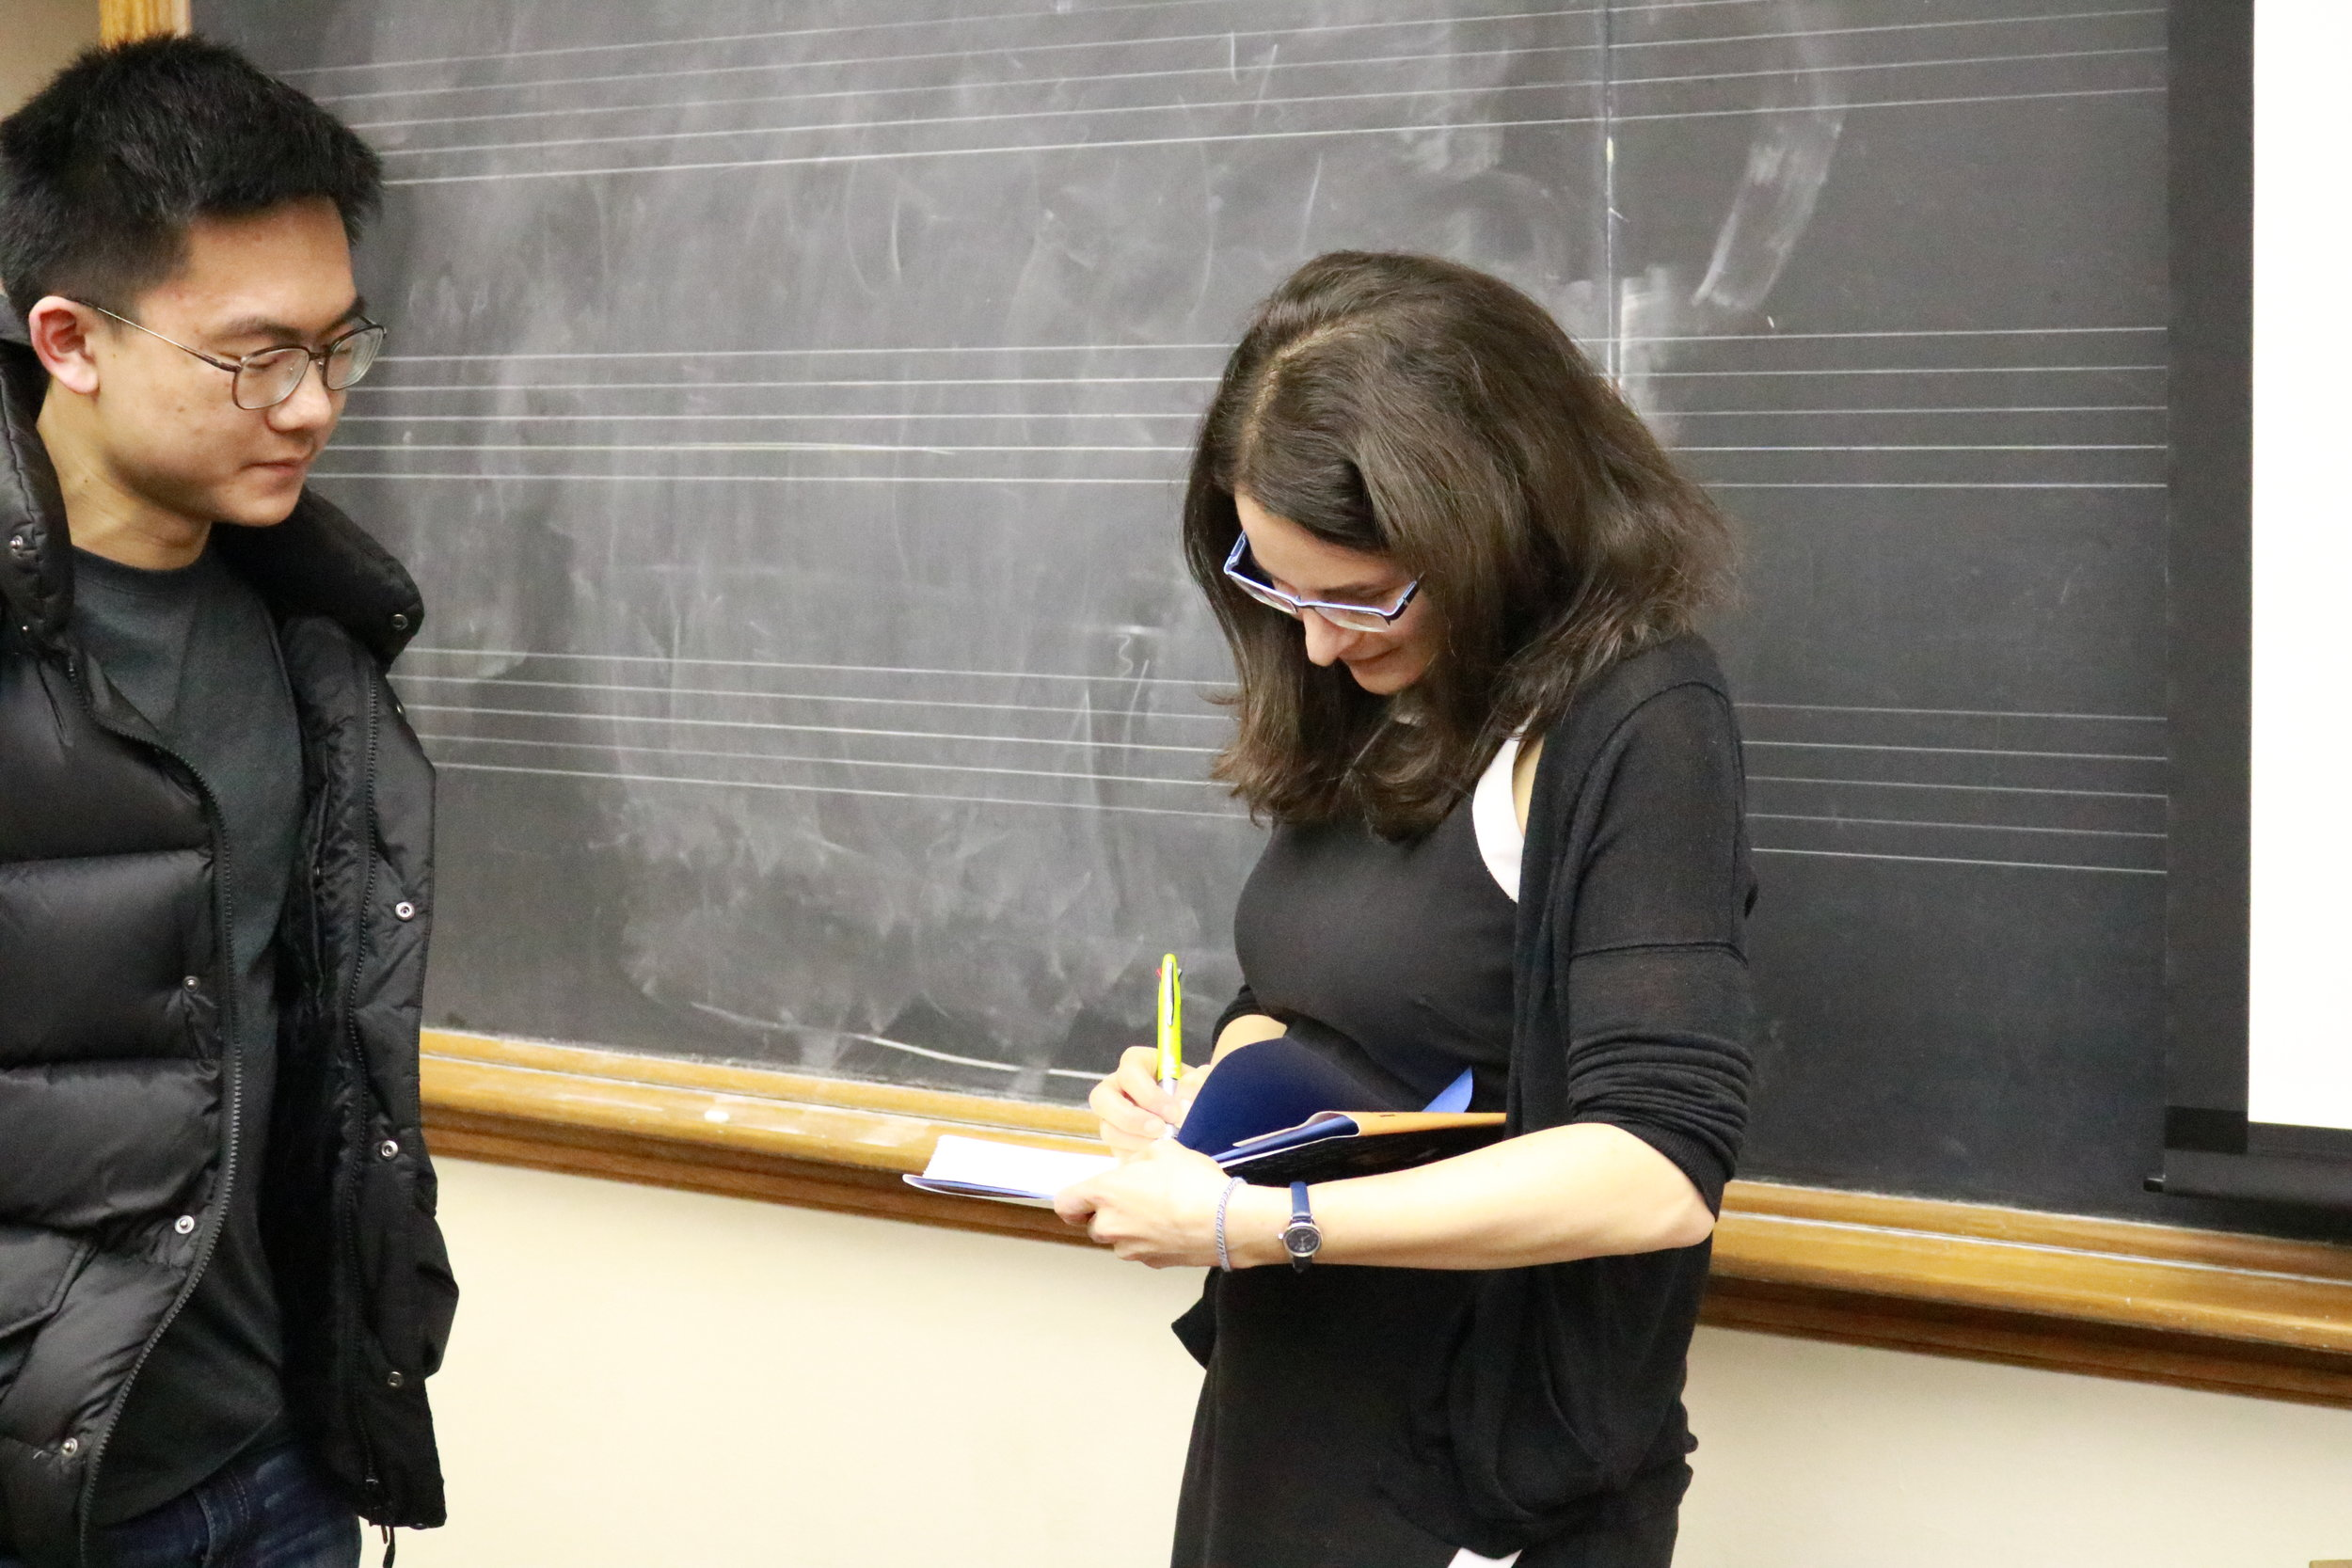 Sarah Hurwitz signs a student's copy of her book after a speaker event.